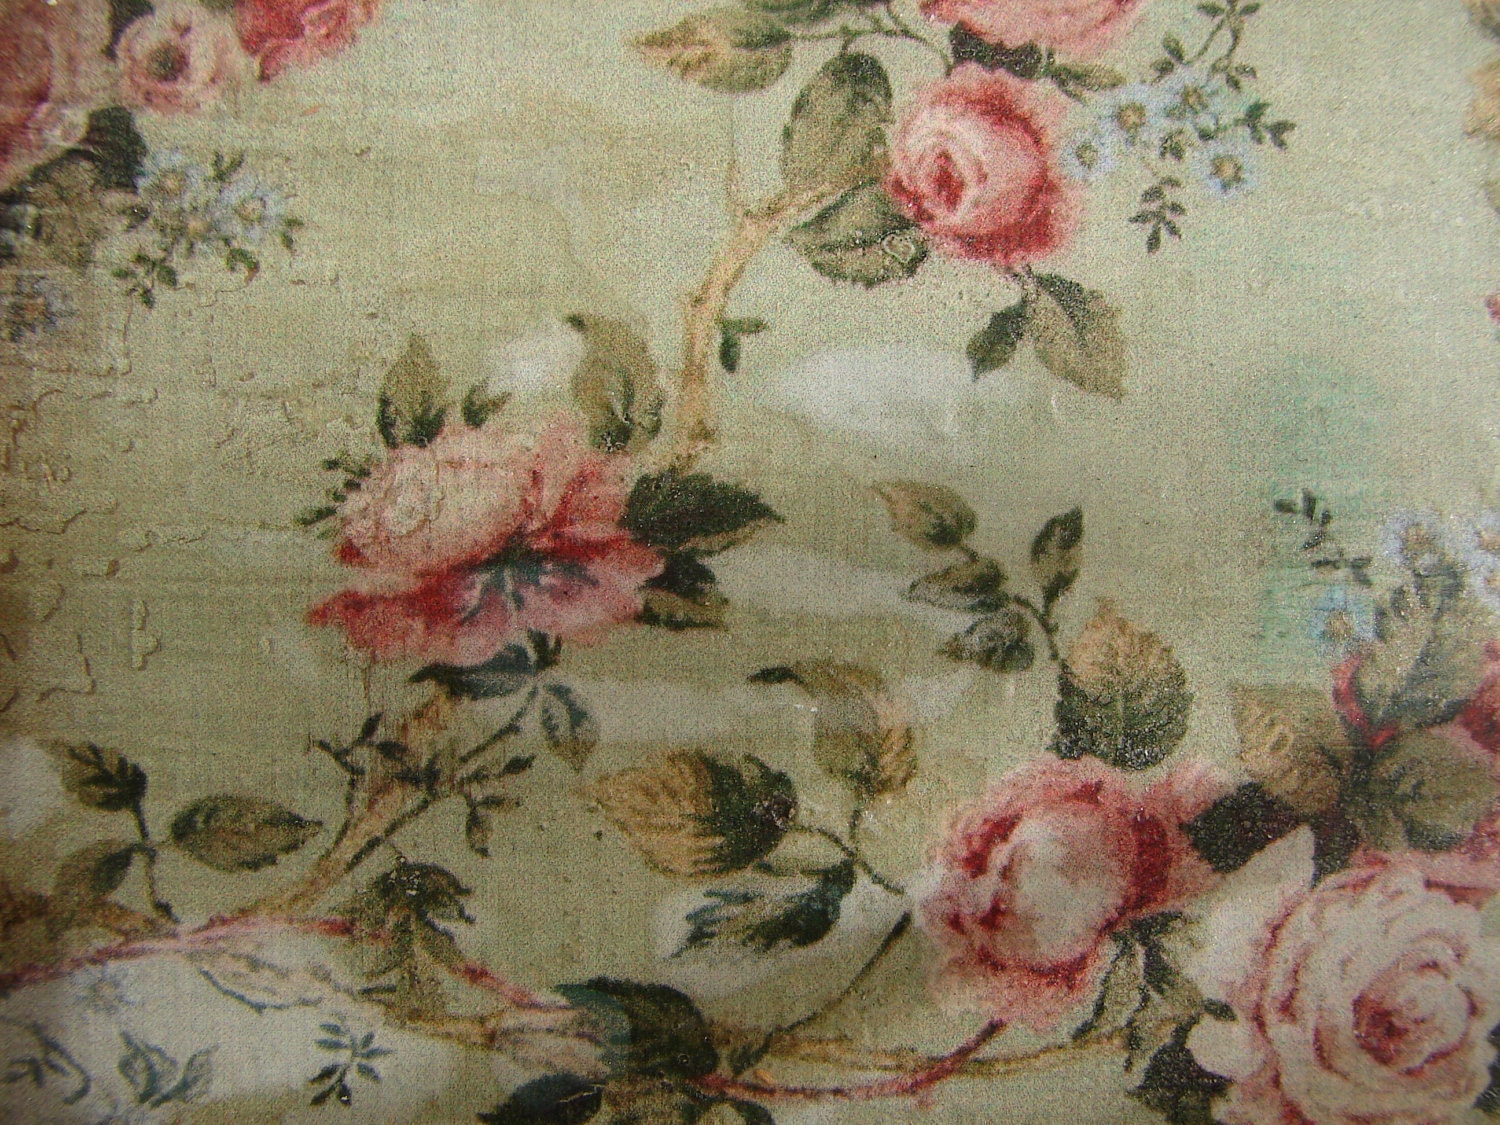 Vintage floral wallpaper imagefrench shabby chic roseslarge - Antic and chic ...